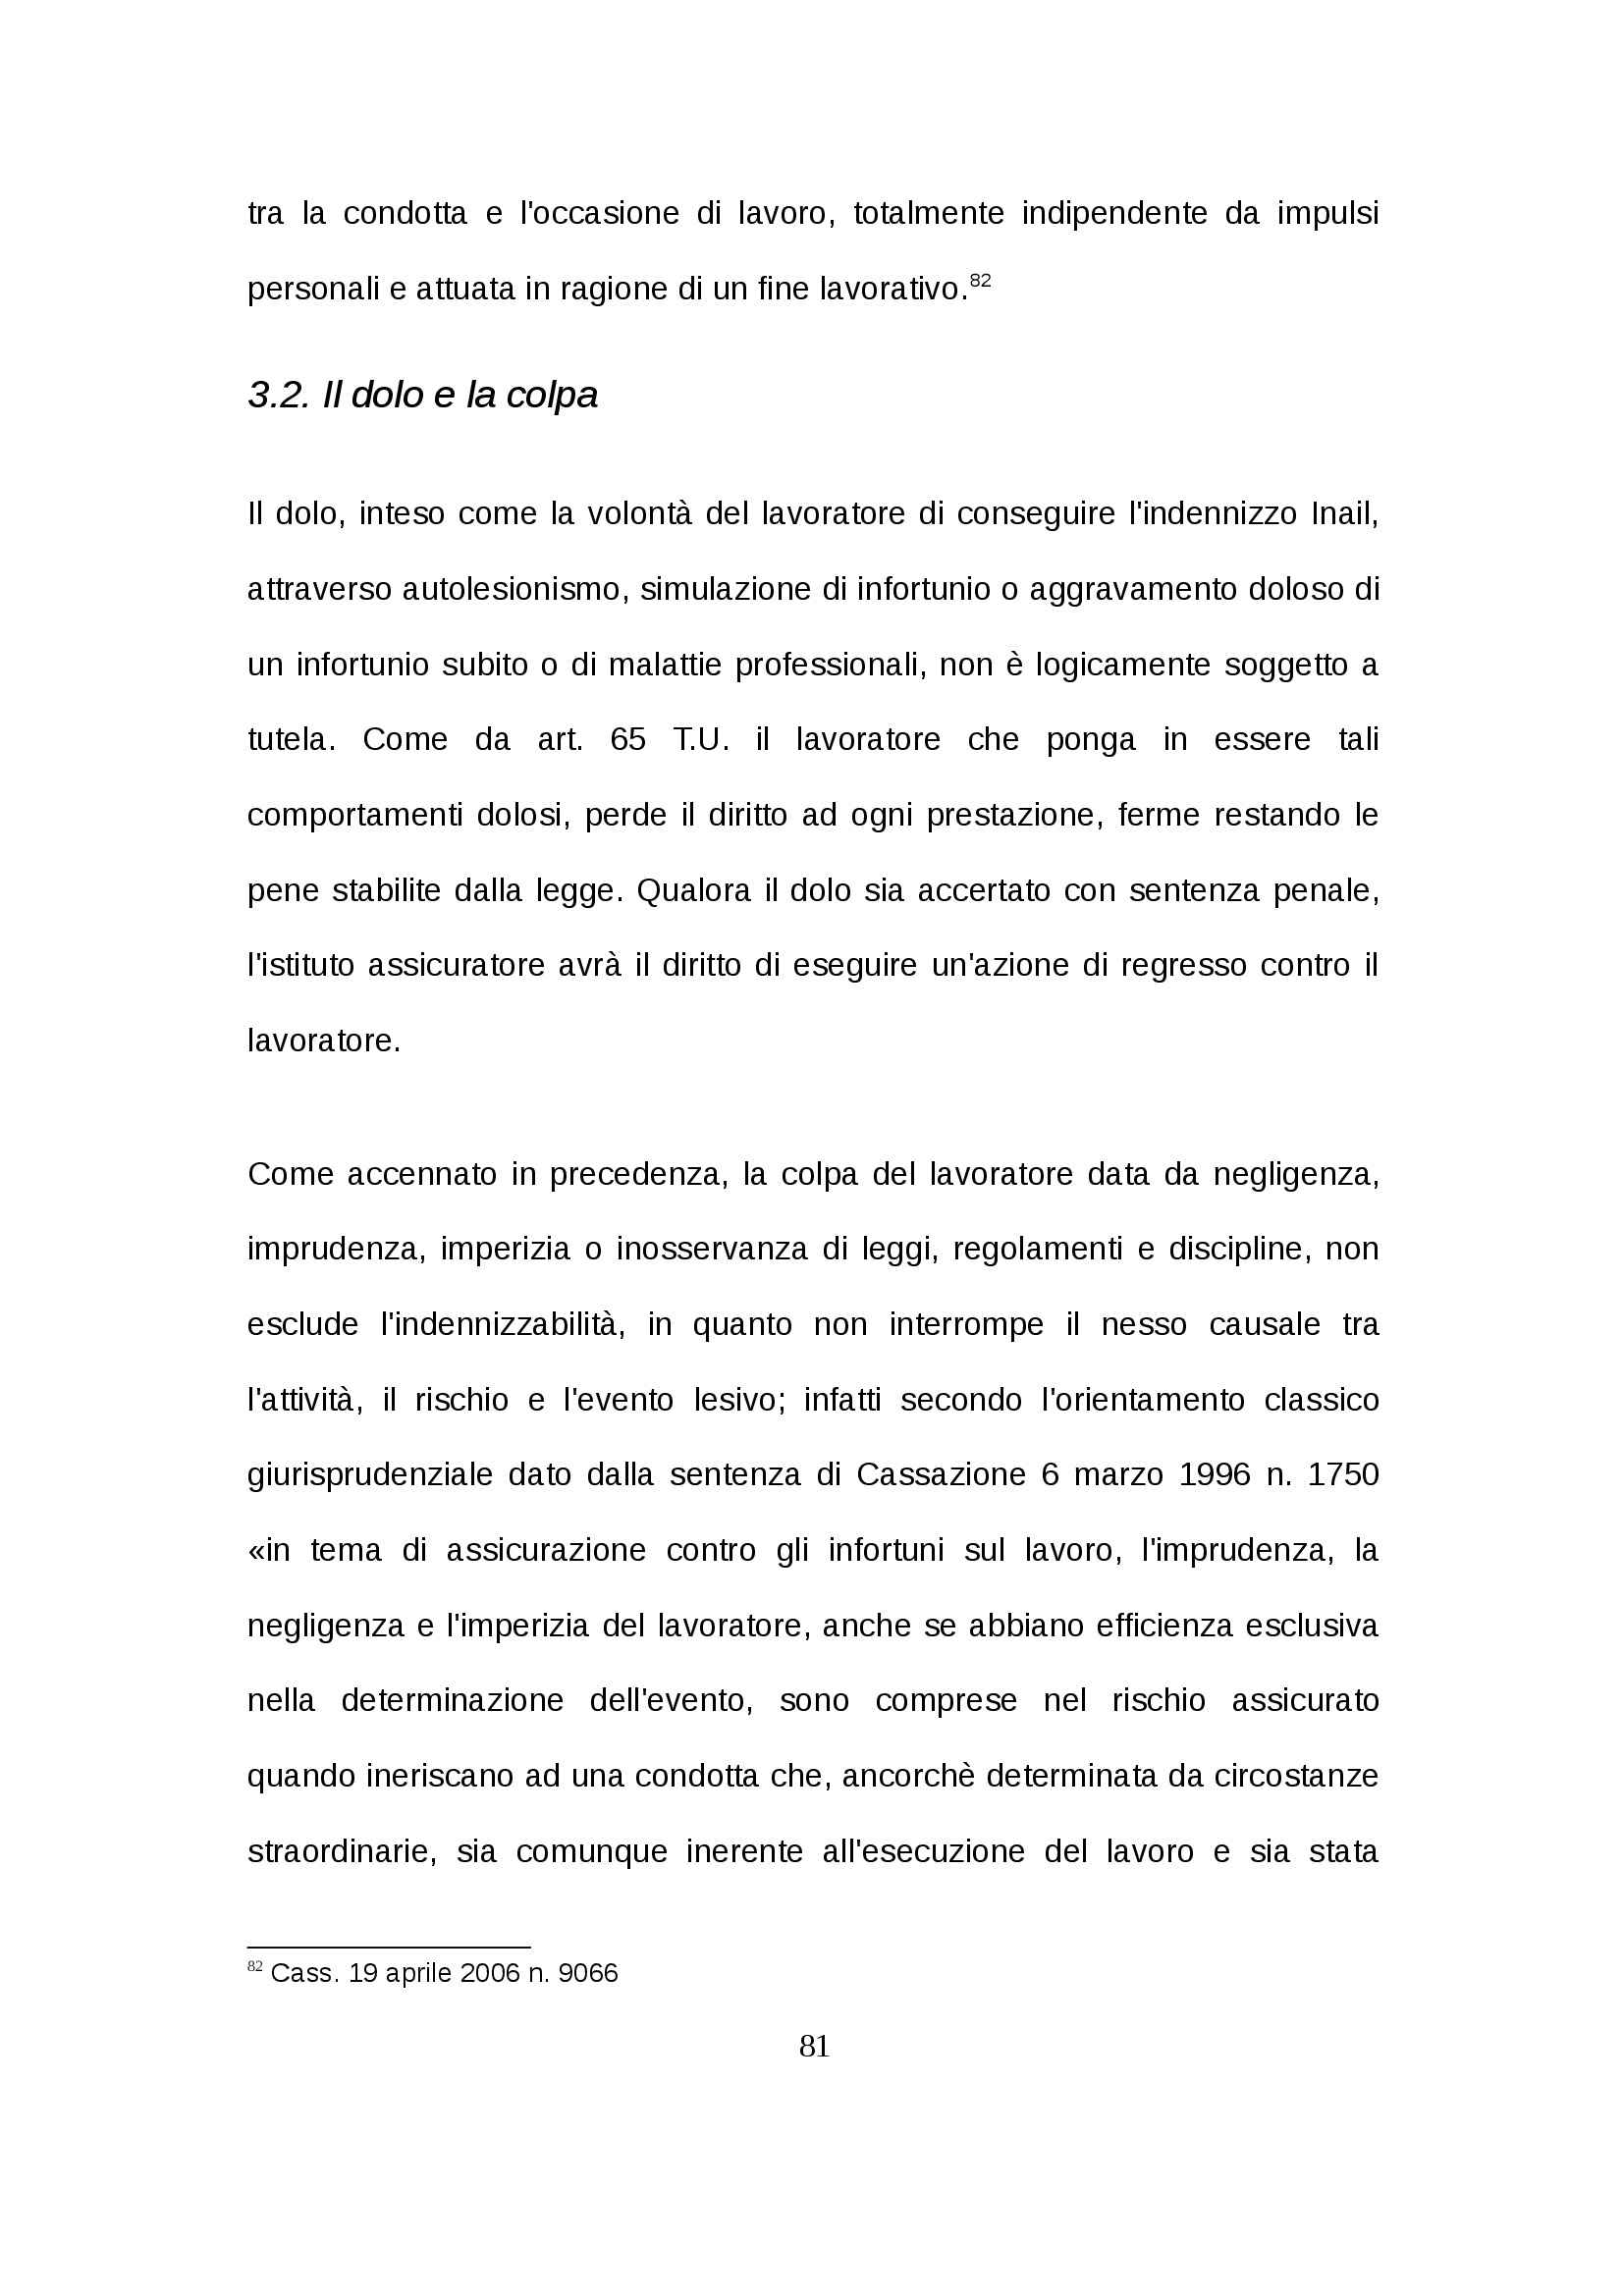 Tesi - Infortunio in itinere Pag. 81